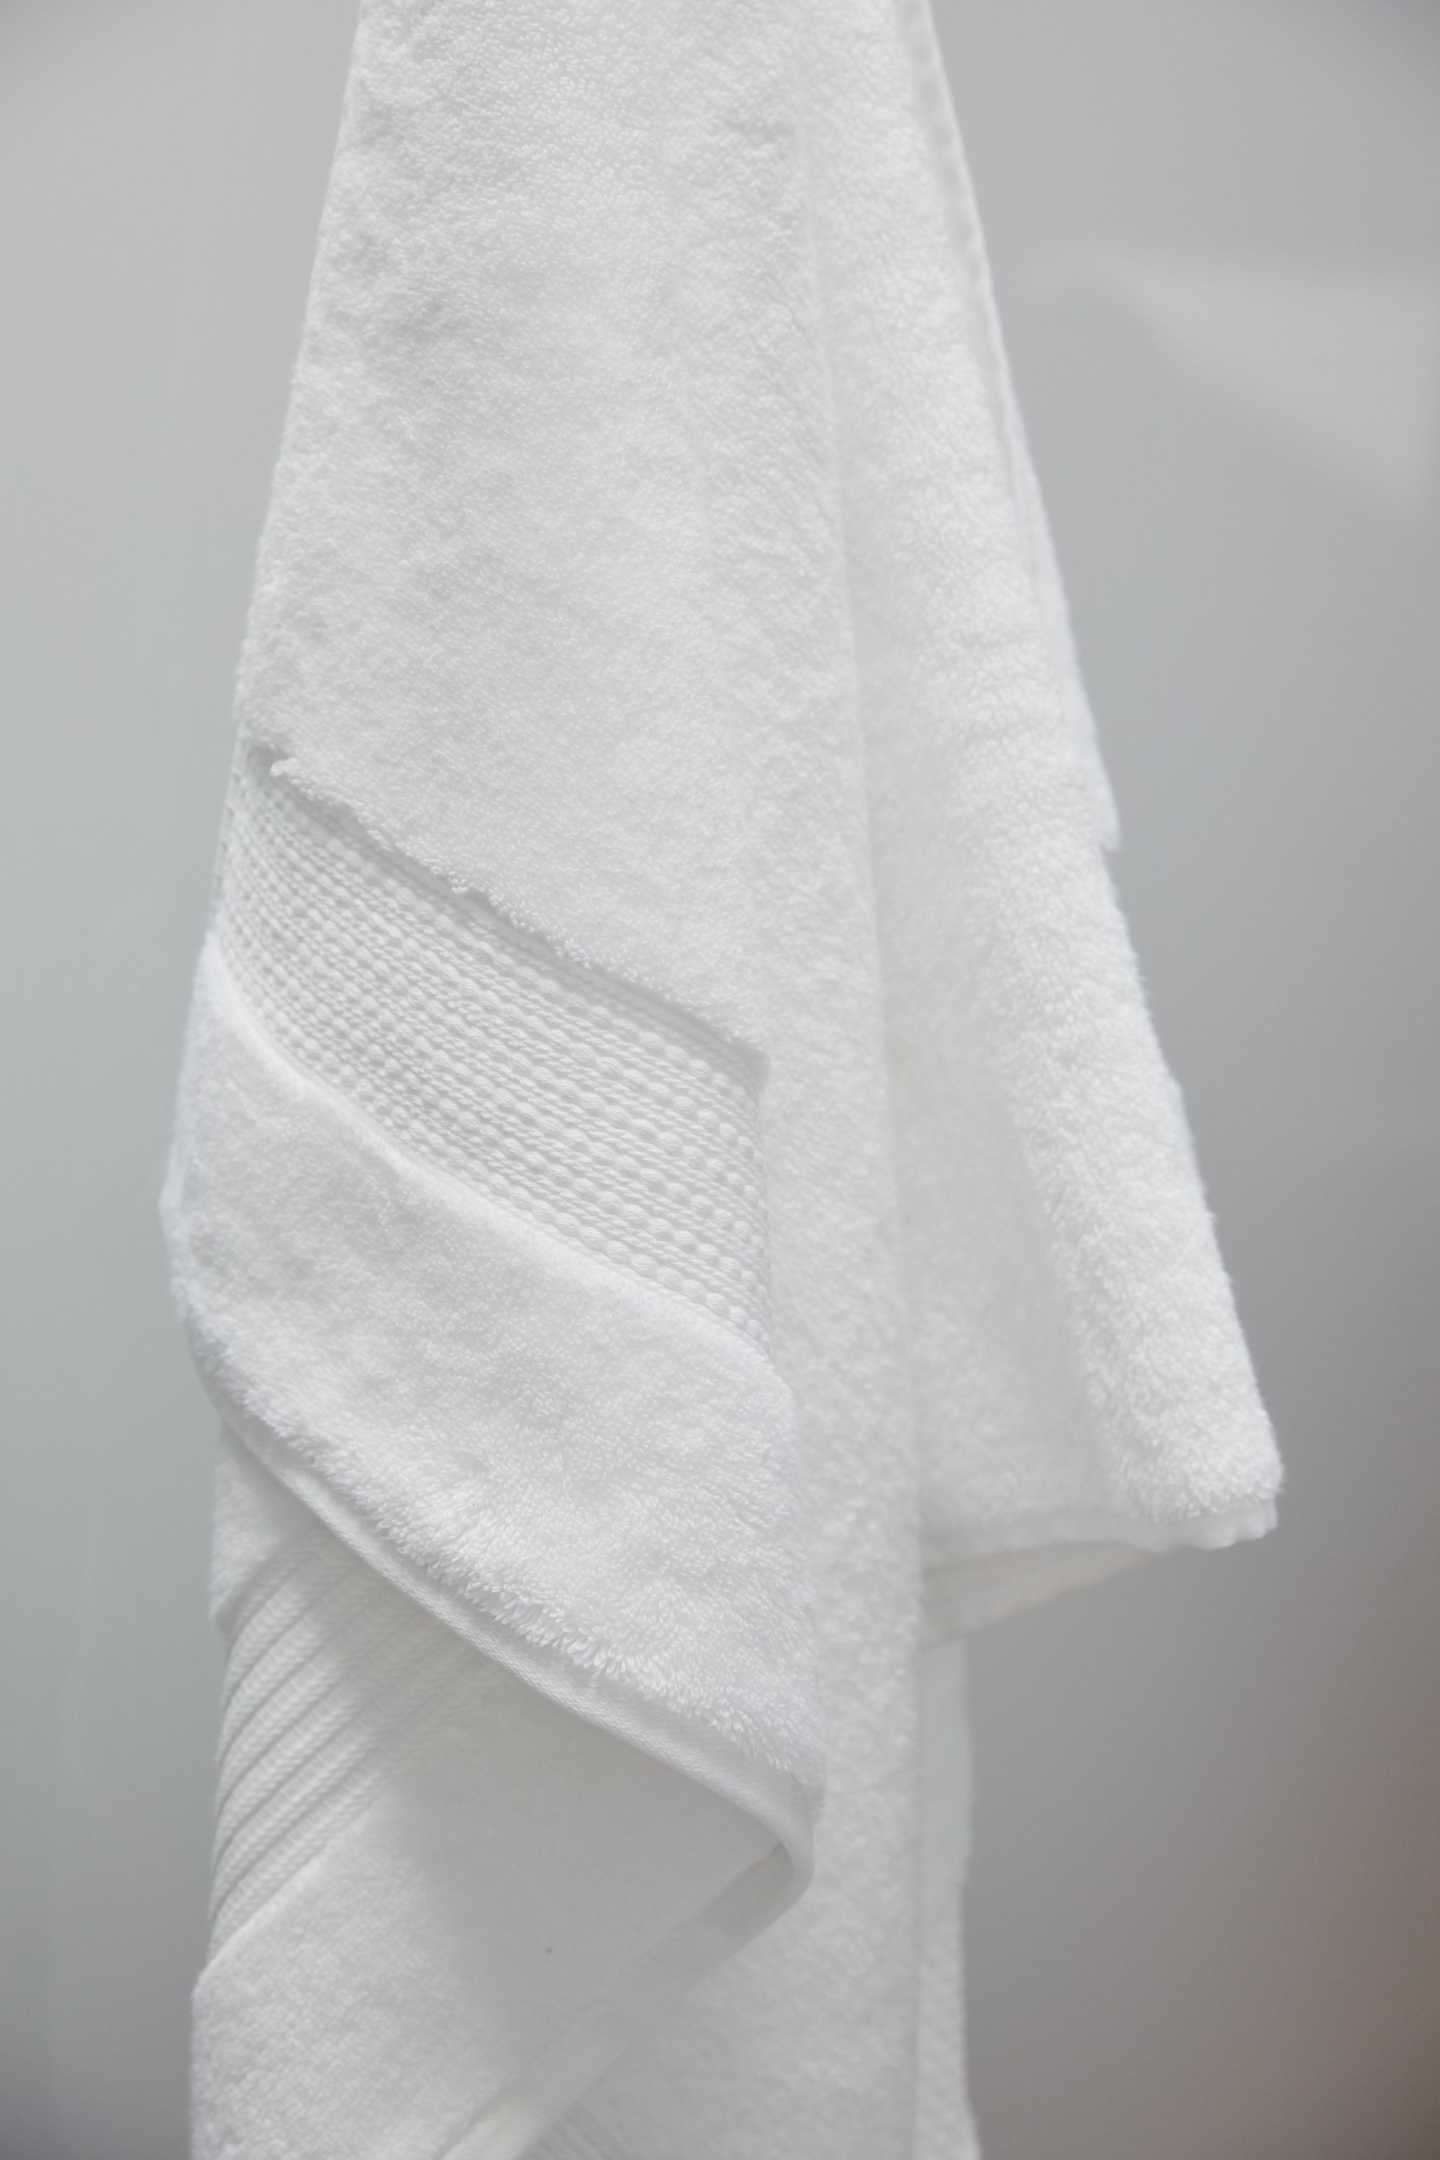 Turkish Quick-Dry Bath Towels (Set of 2) - undefined - 3